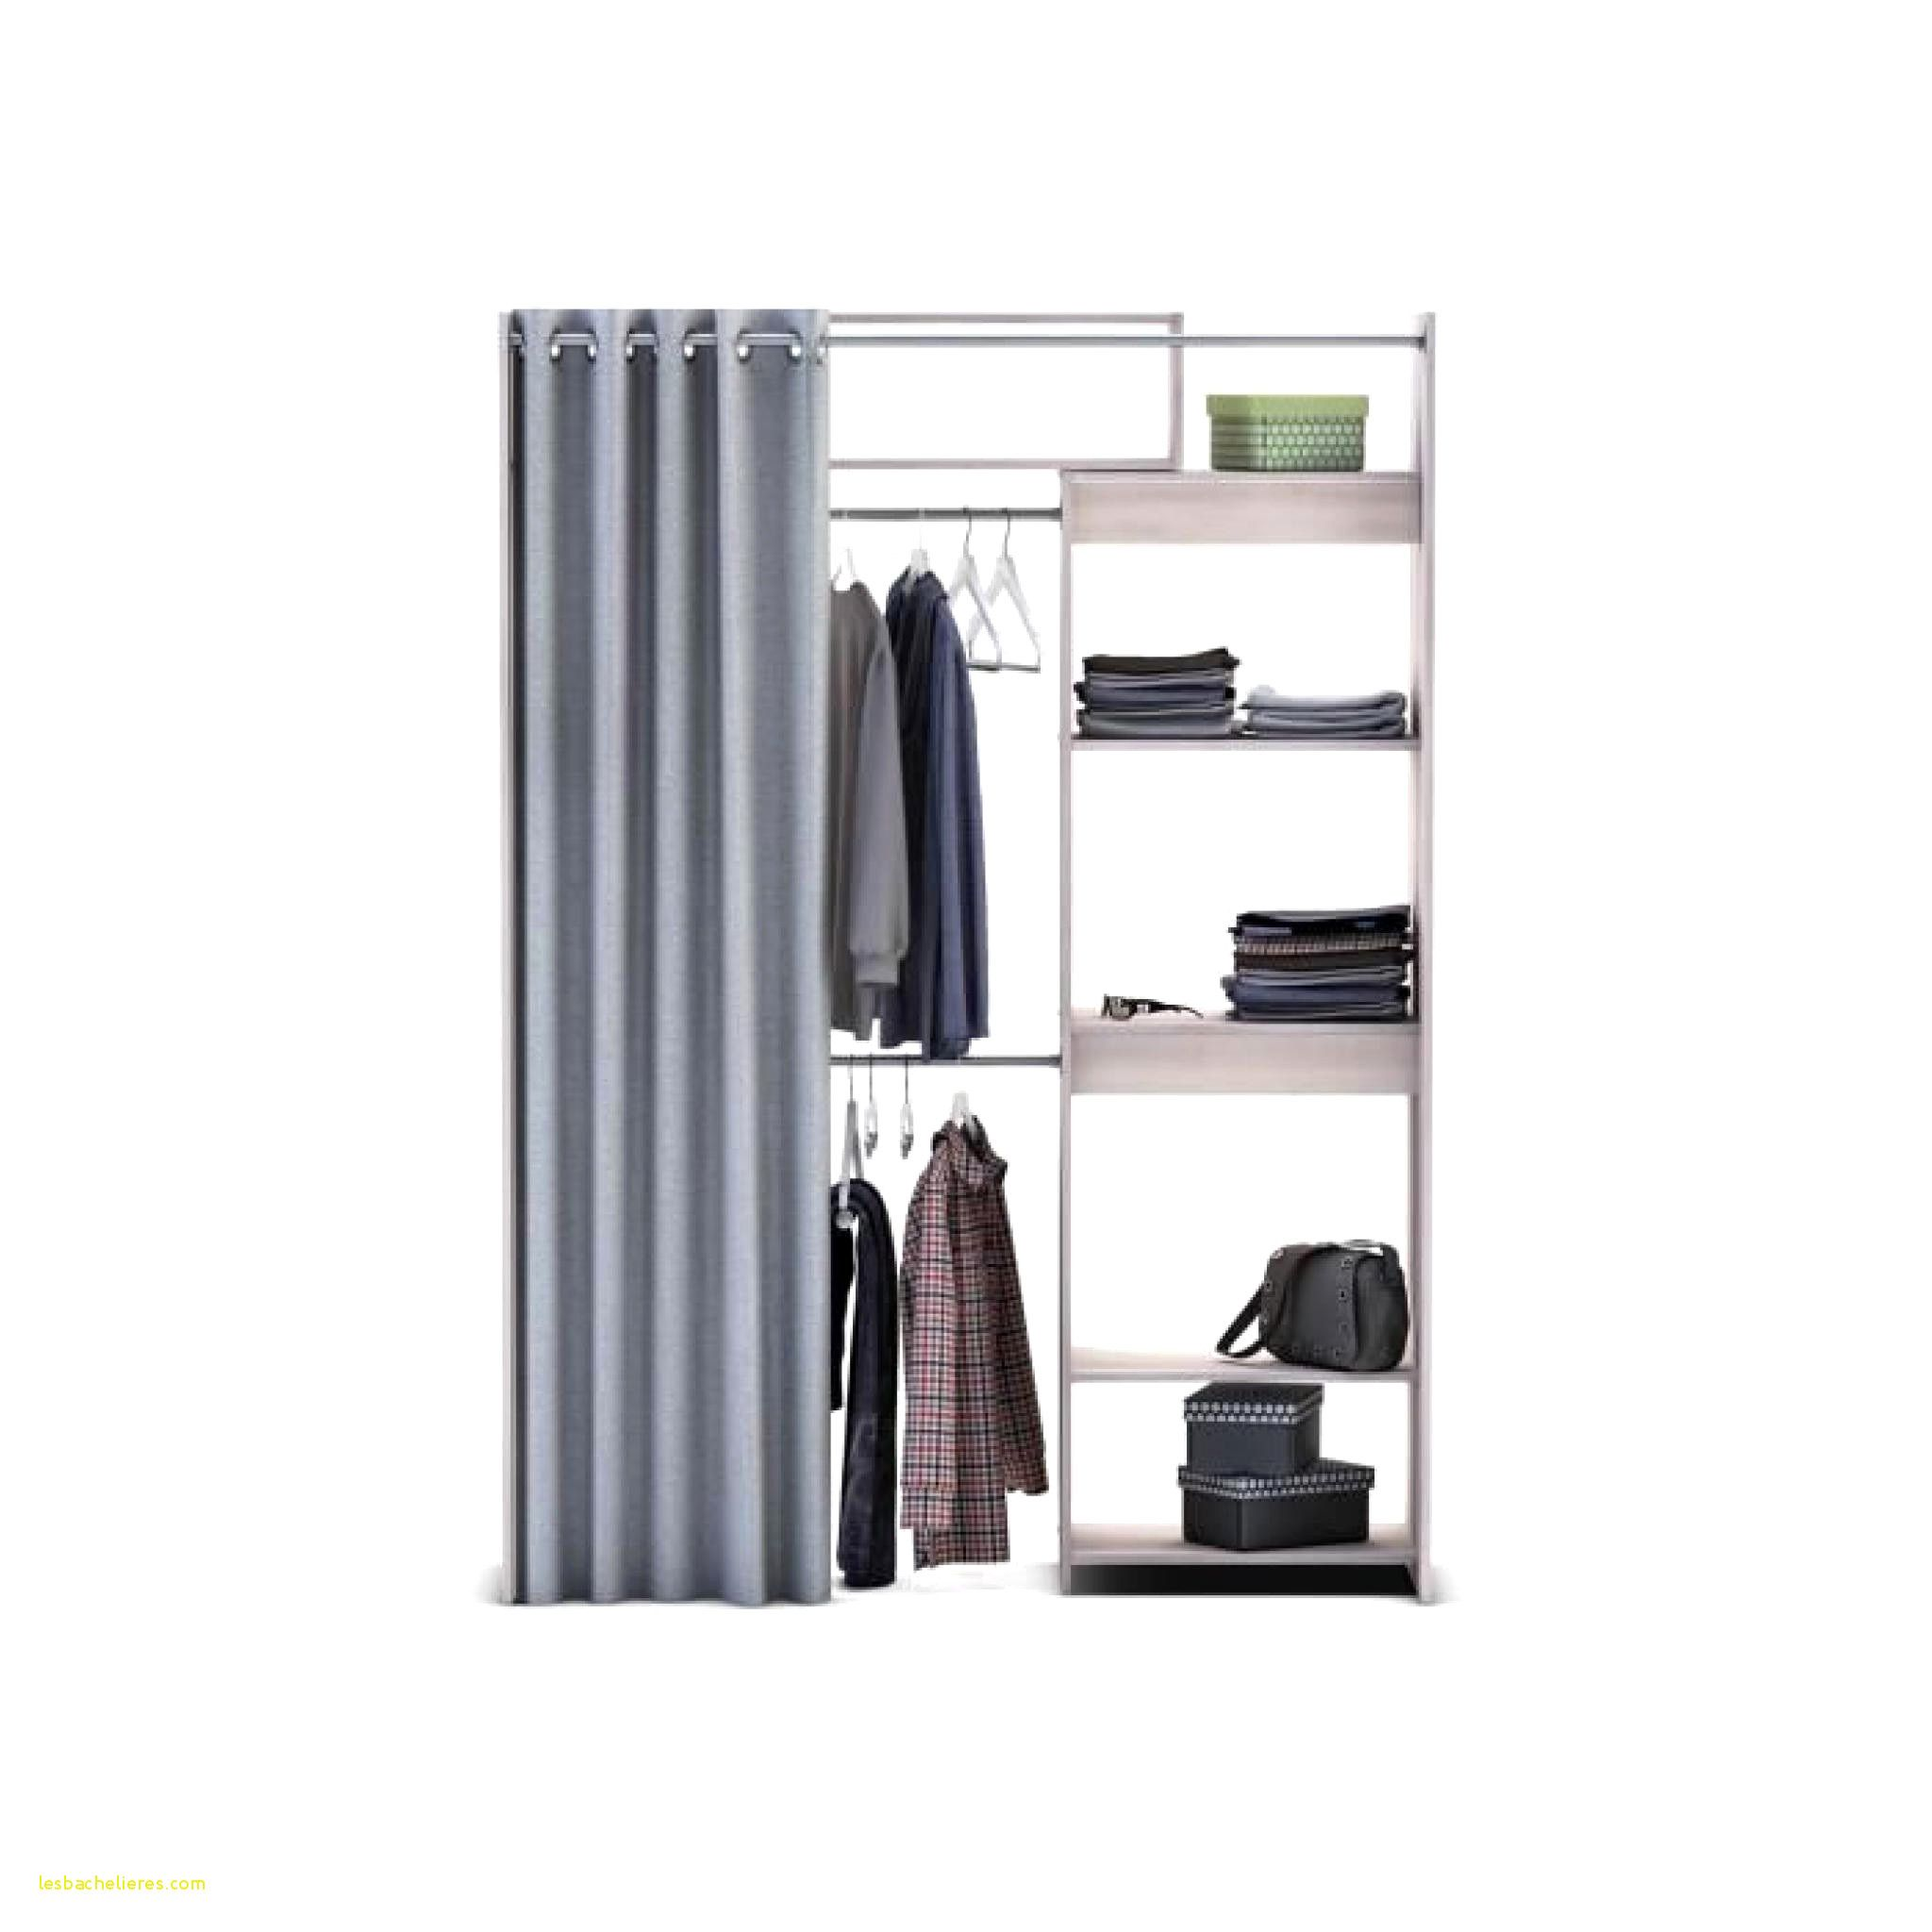 20 Ikea Armoire Penderie Check more at https